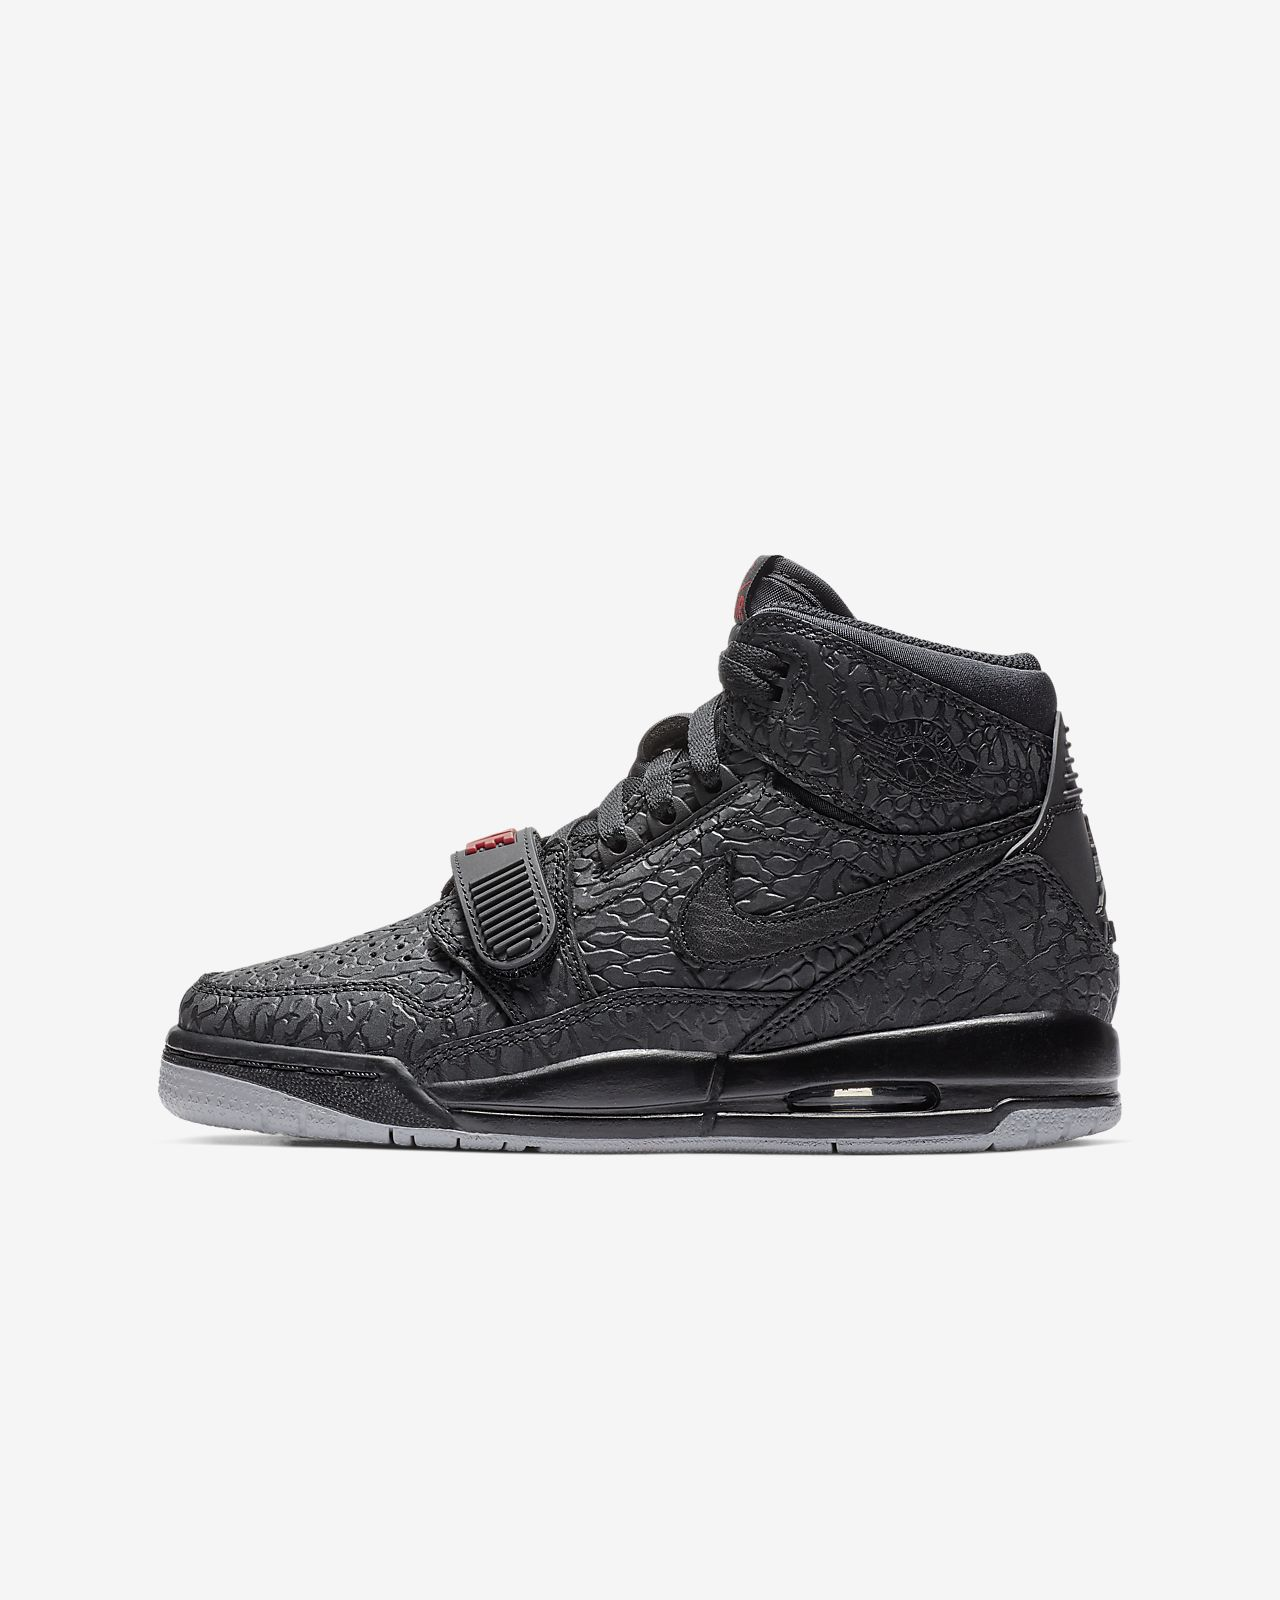 basquette air jordan enfants